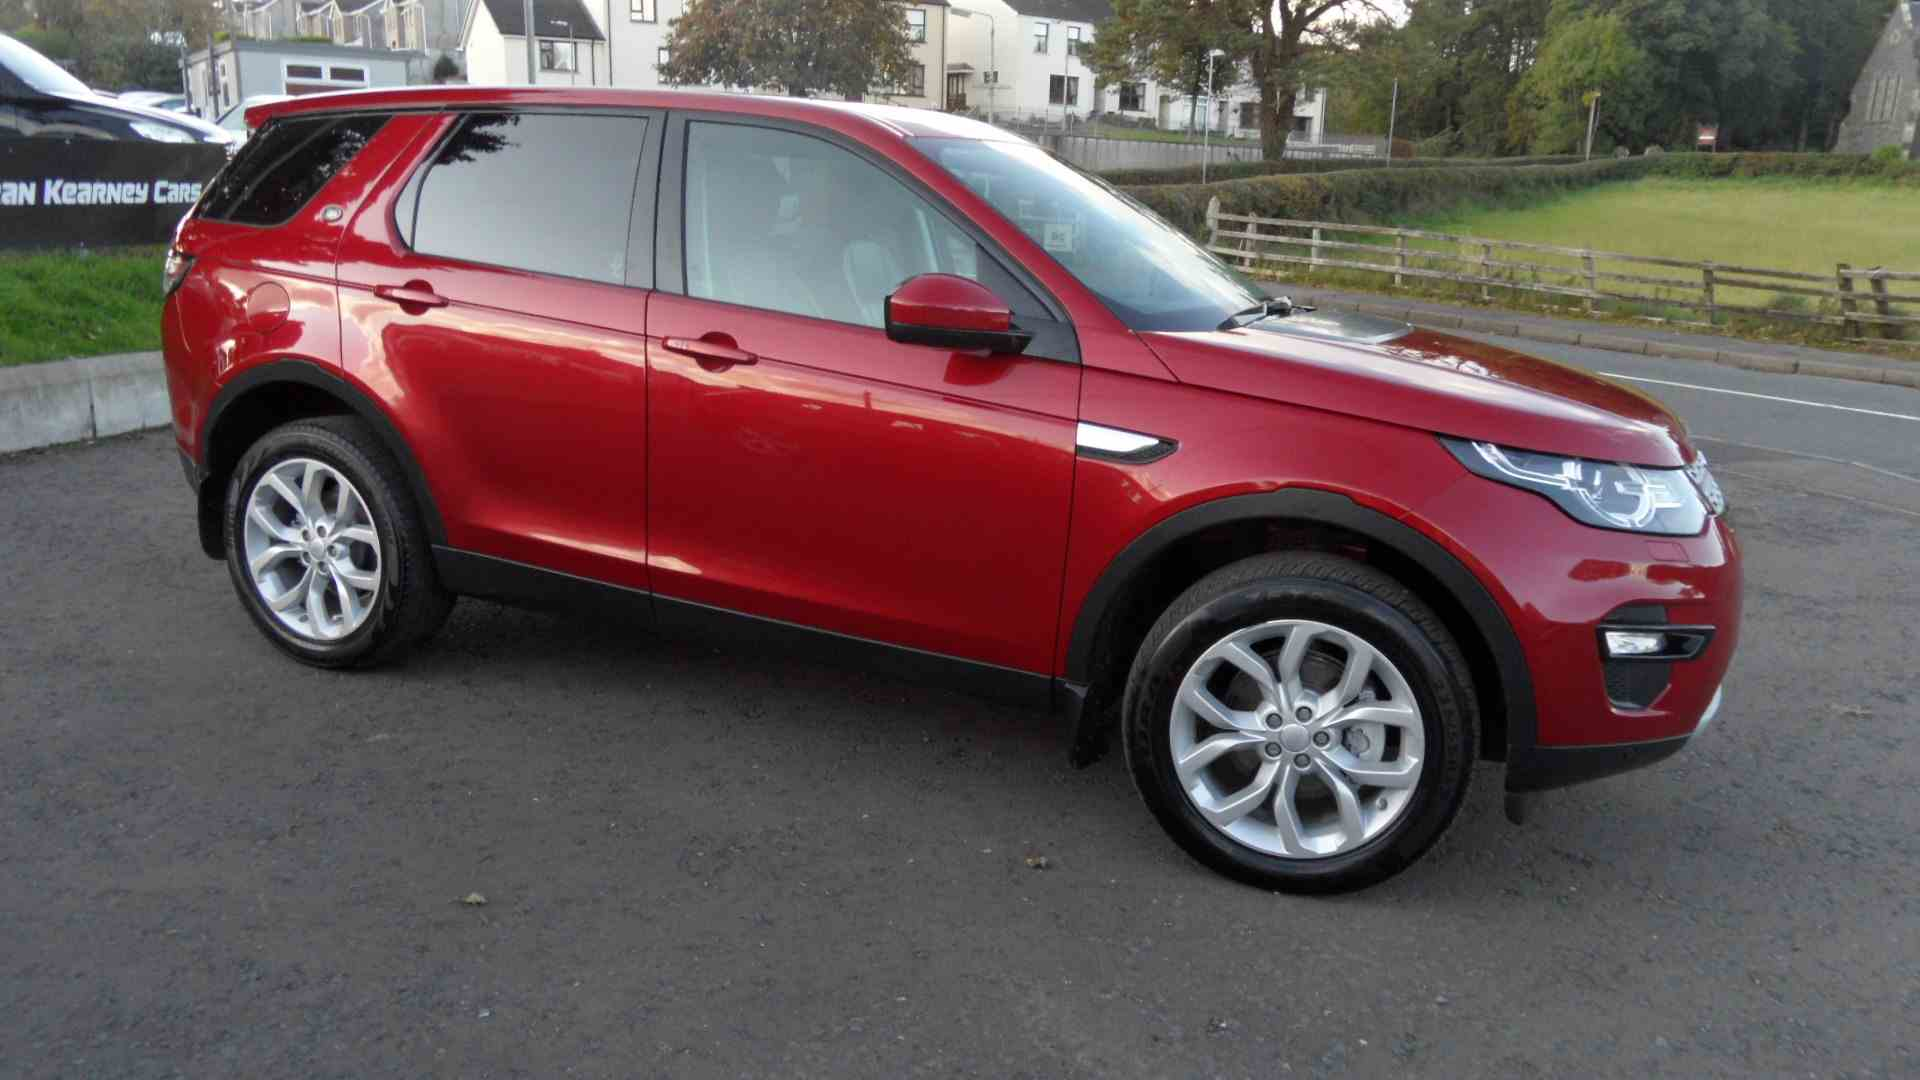 Sold locally by ourselves last year, due to be cleaned Monday, beatiful 7 Seater HSE Discovery Sport in Firenze Red, call Sean on 07970936458 or 02879401371 to arrange a test drive and get a keen finance quote from our partners Northridge, Santander Consumer Finance, Motonovo